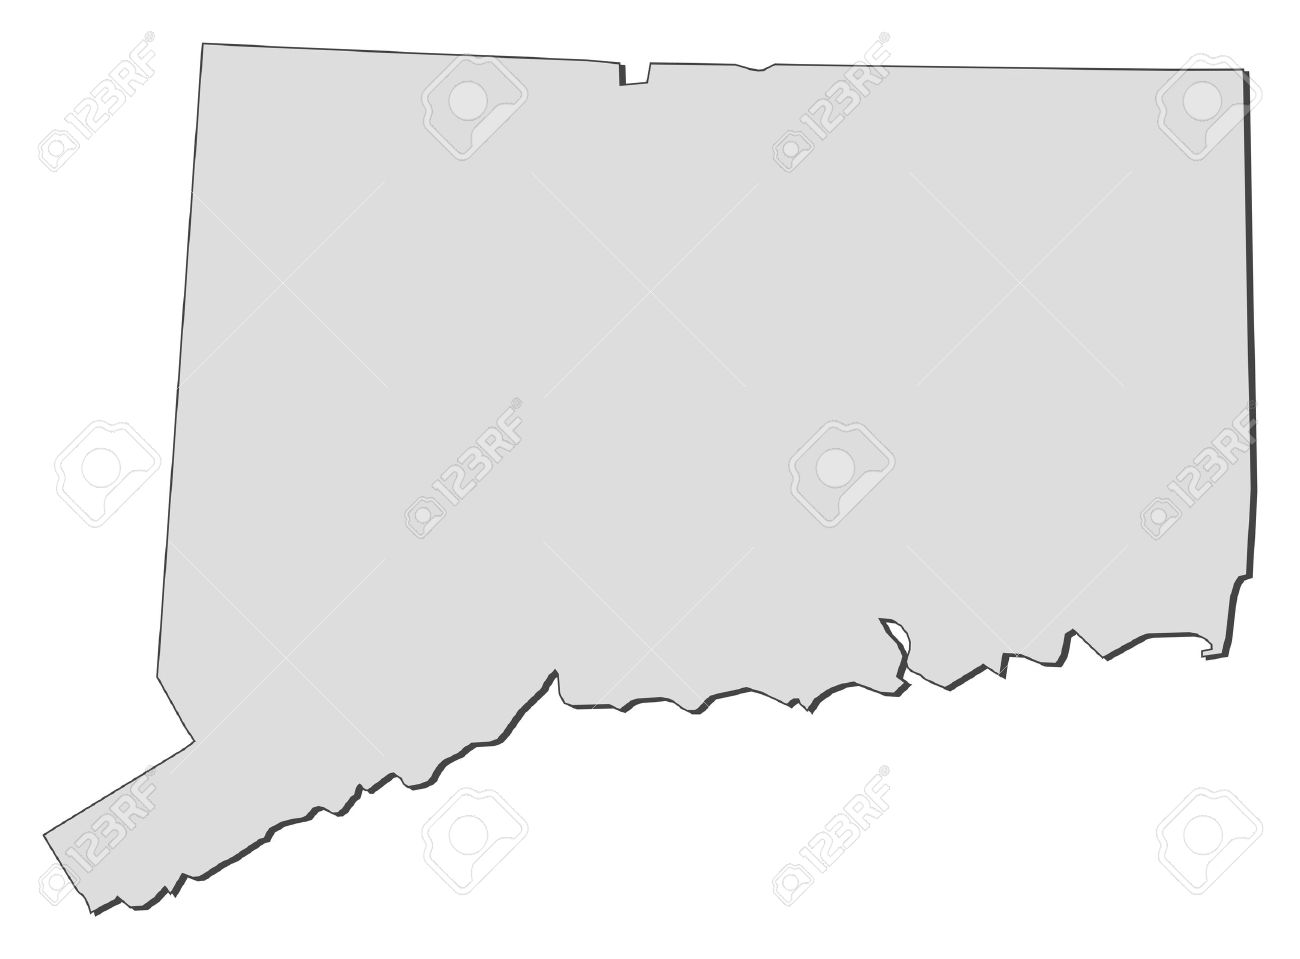 14368574-Map-of-Connecticut-a-state-of-U